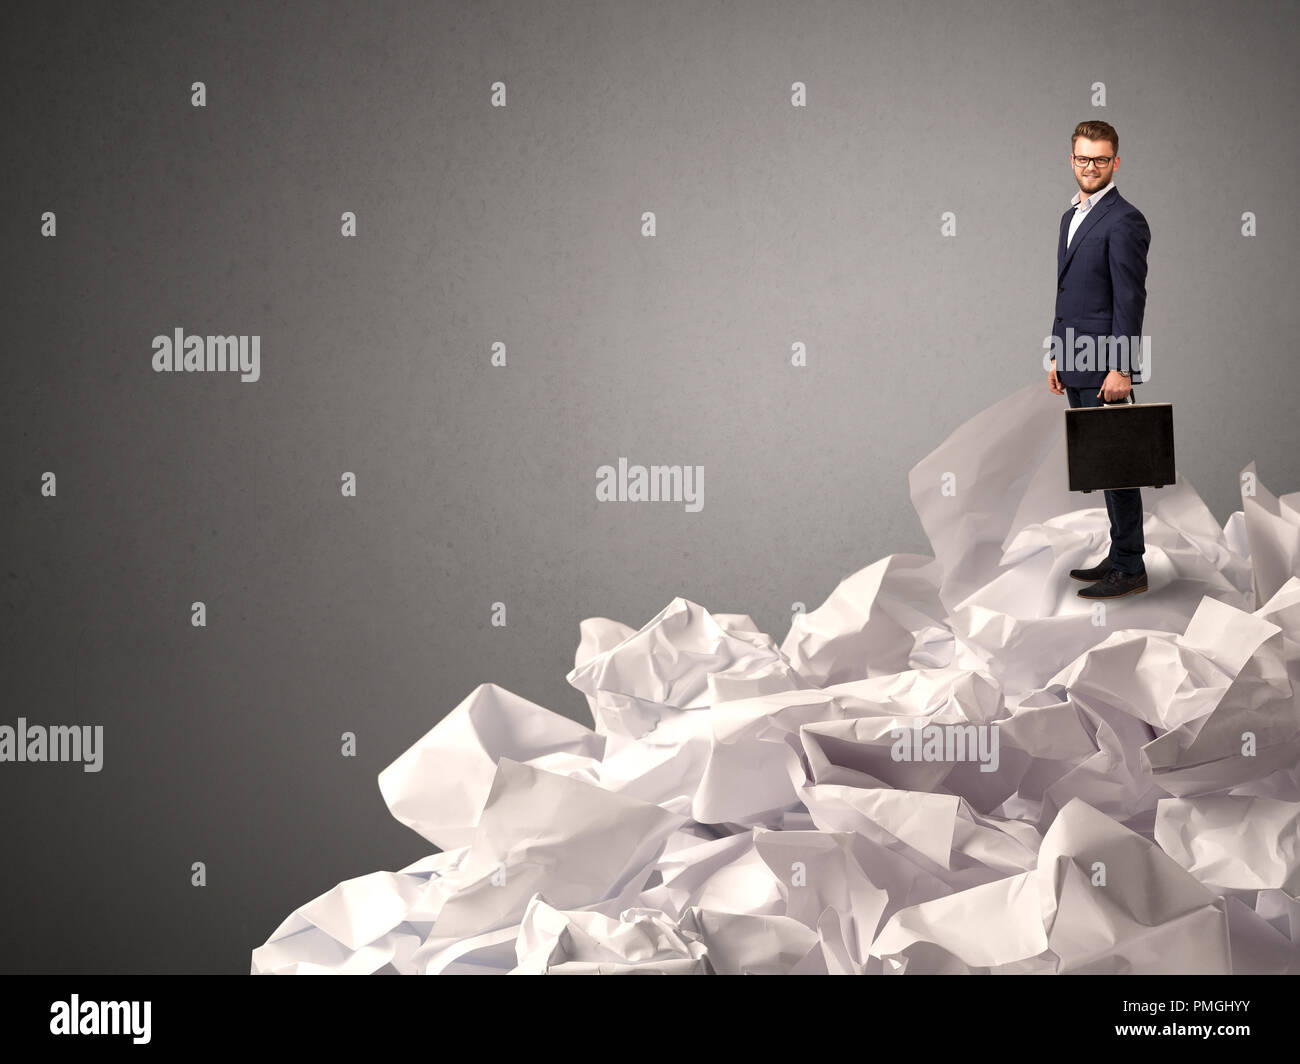 Thoughtful young businessman standing on a pile of crumpled paper with a deep grey background - Stock Image